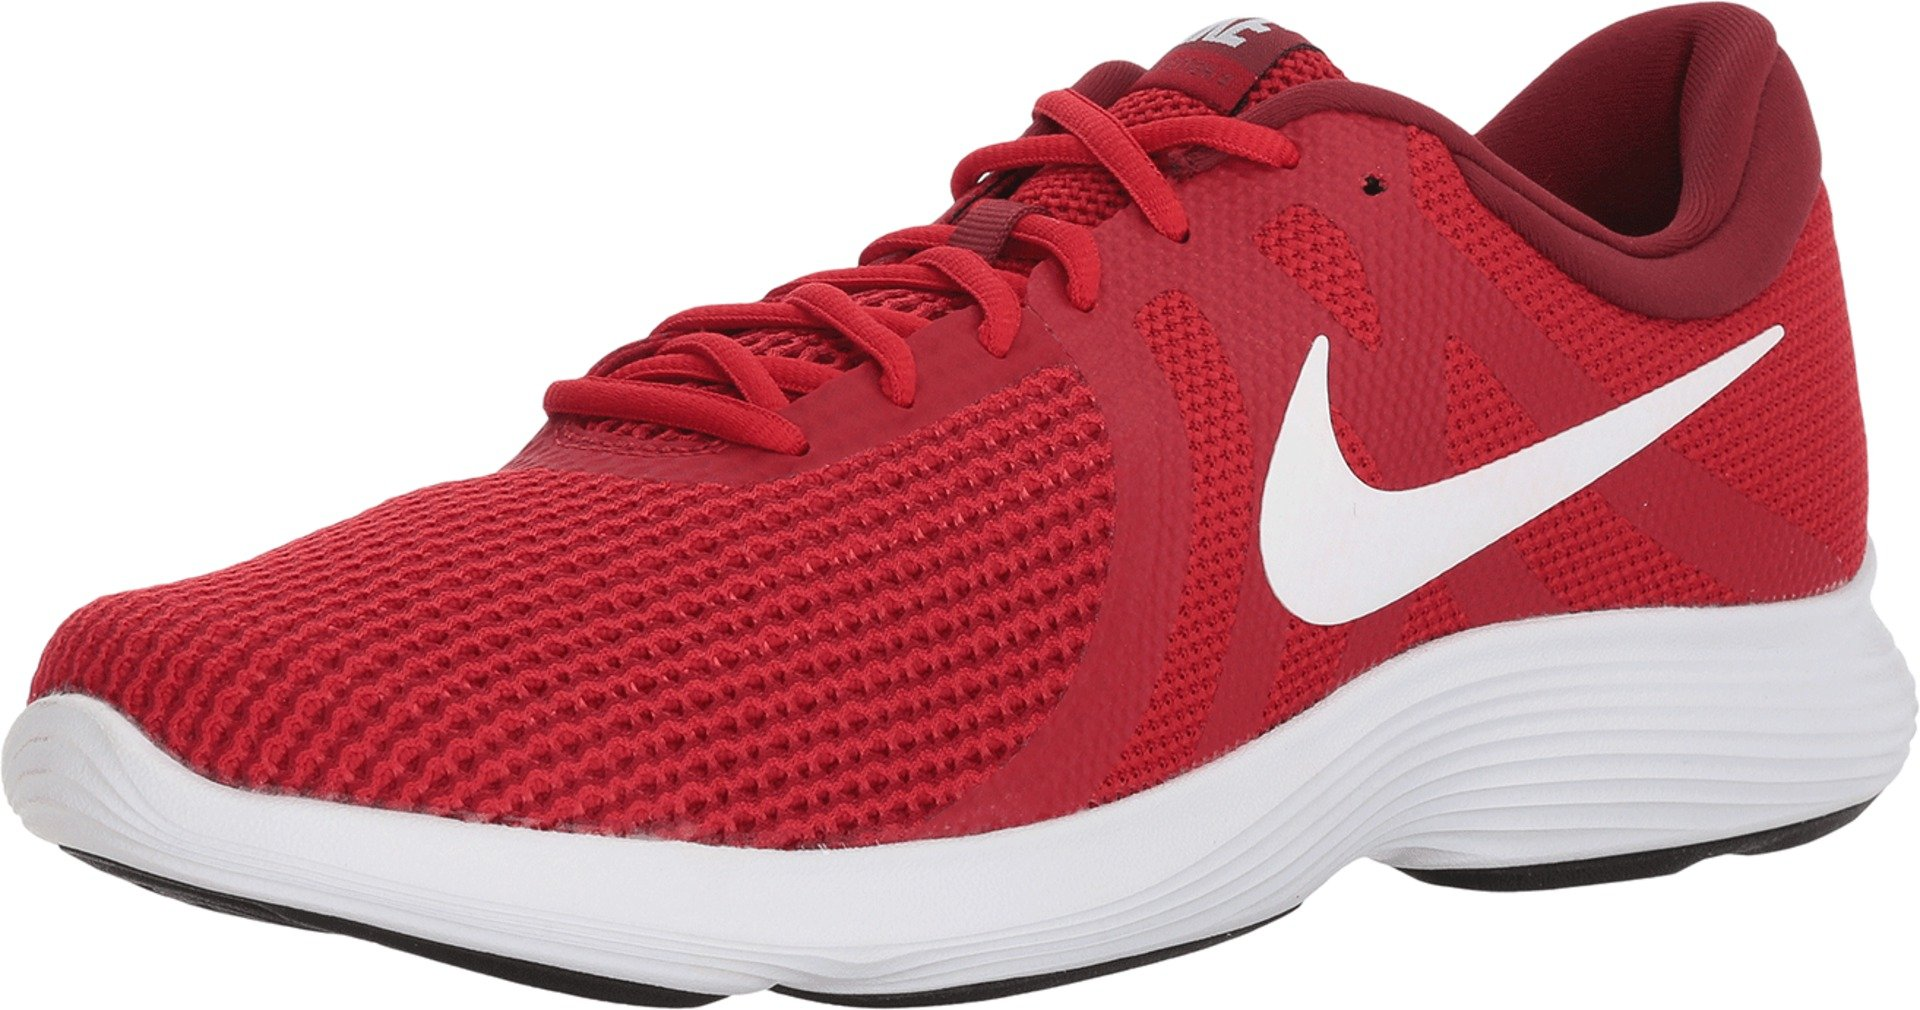 Nike Mens Revolution 4 Gym RED White Team RED Black Size 8 by Nike